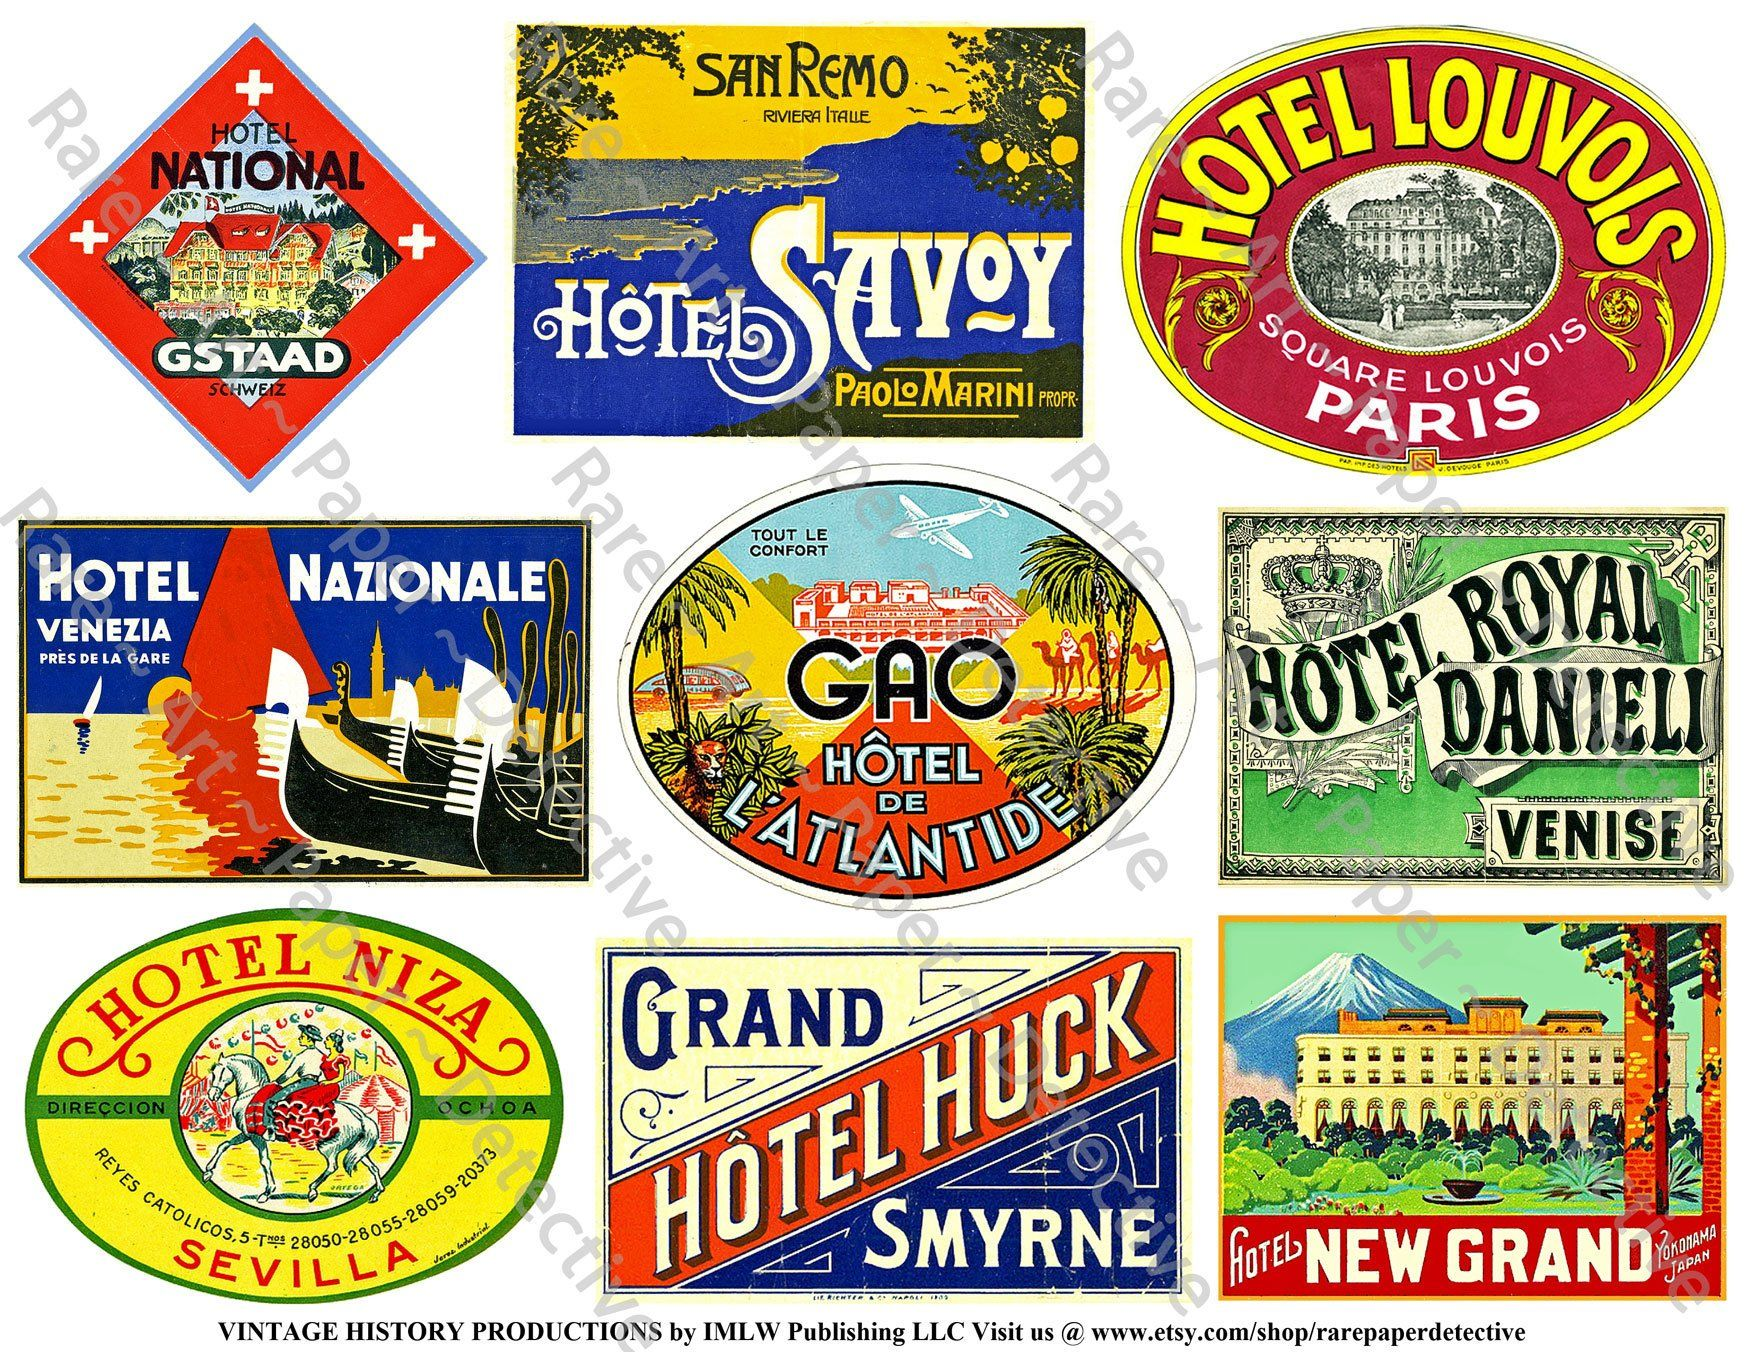 Travel Luggage Labels Printed Sheet Retro Baggage Tag Steamship Travel Trunk Suitcase Decals Travel Journal 763 Hotel Label Art Paper